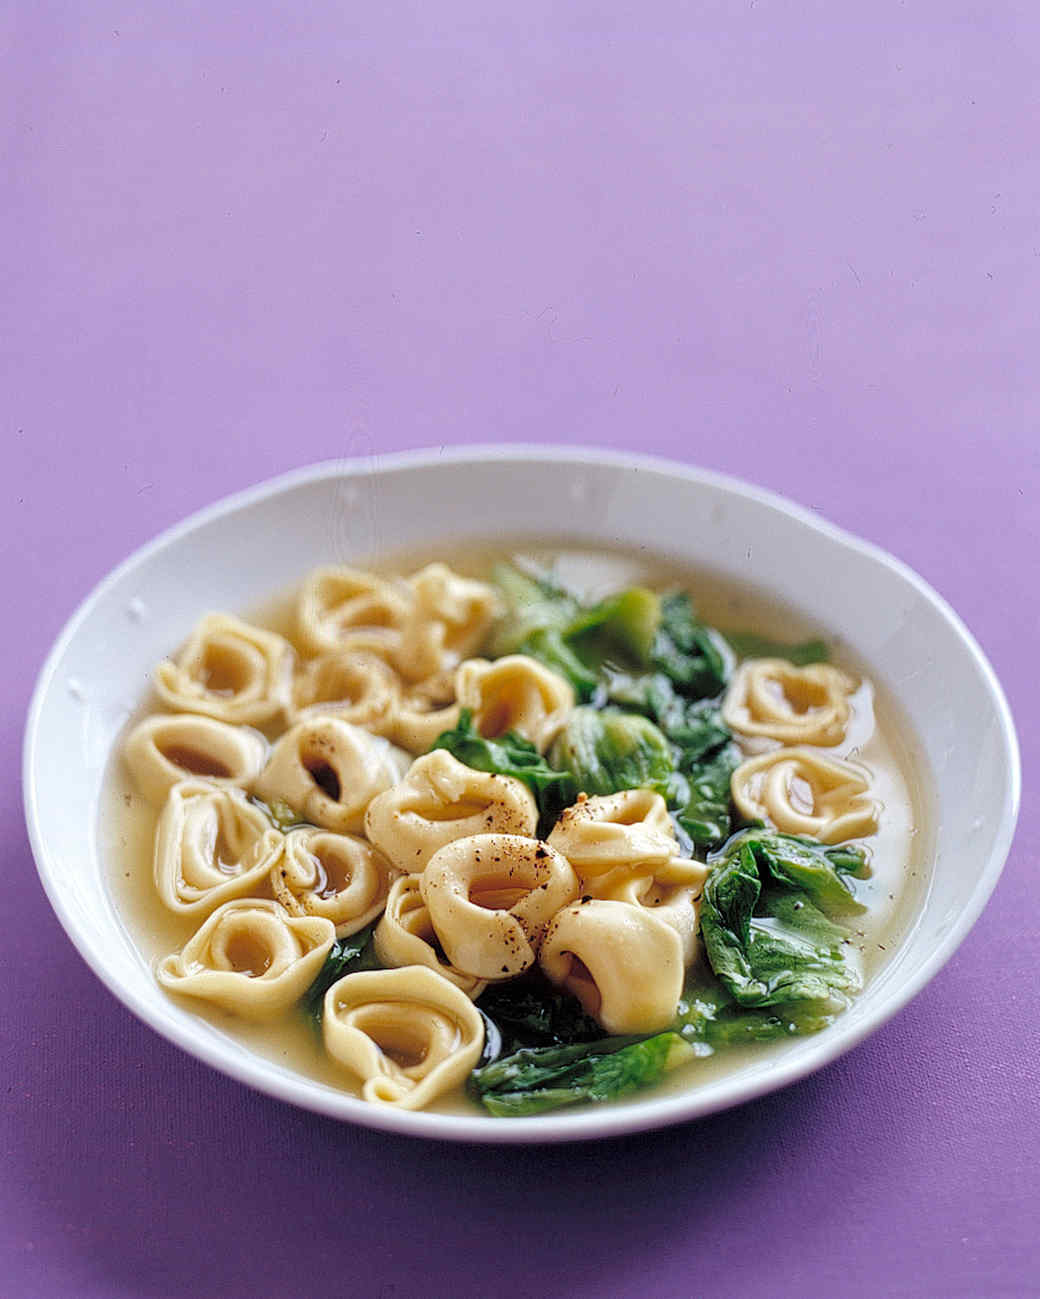 edf_oct03_main_tortellini.jpg